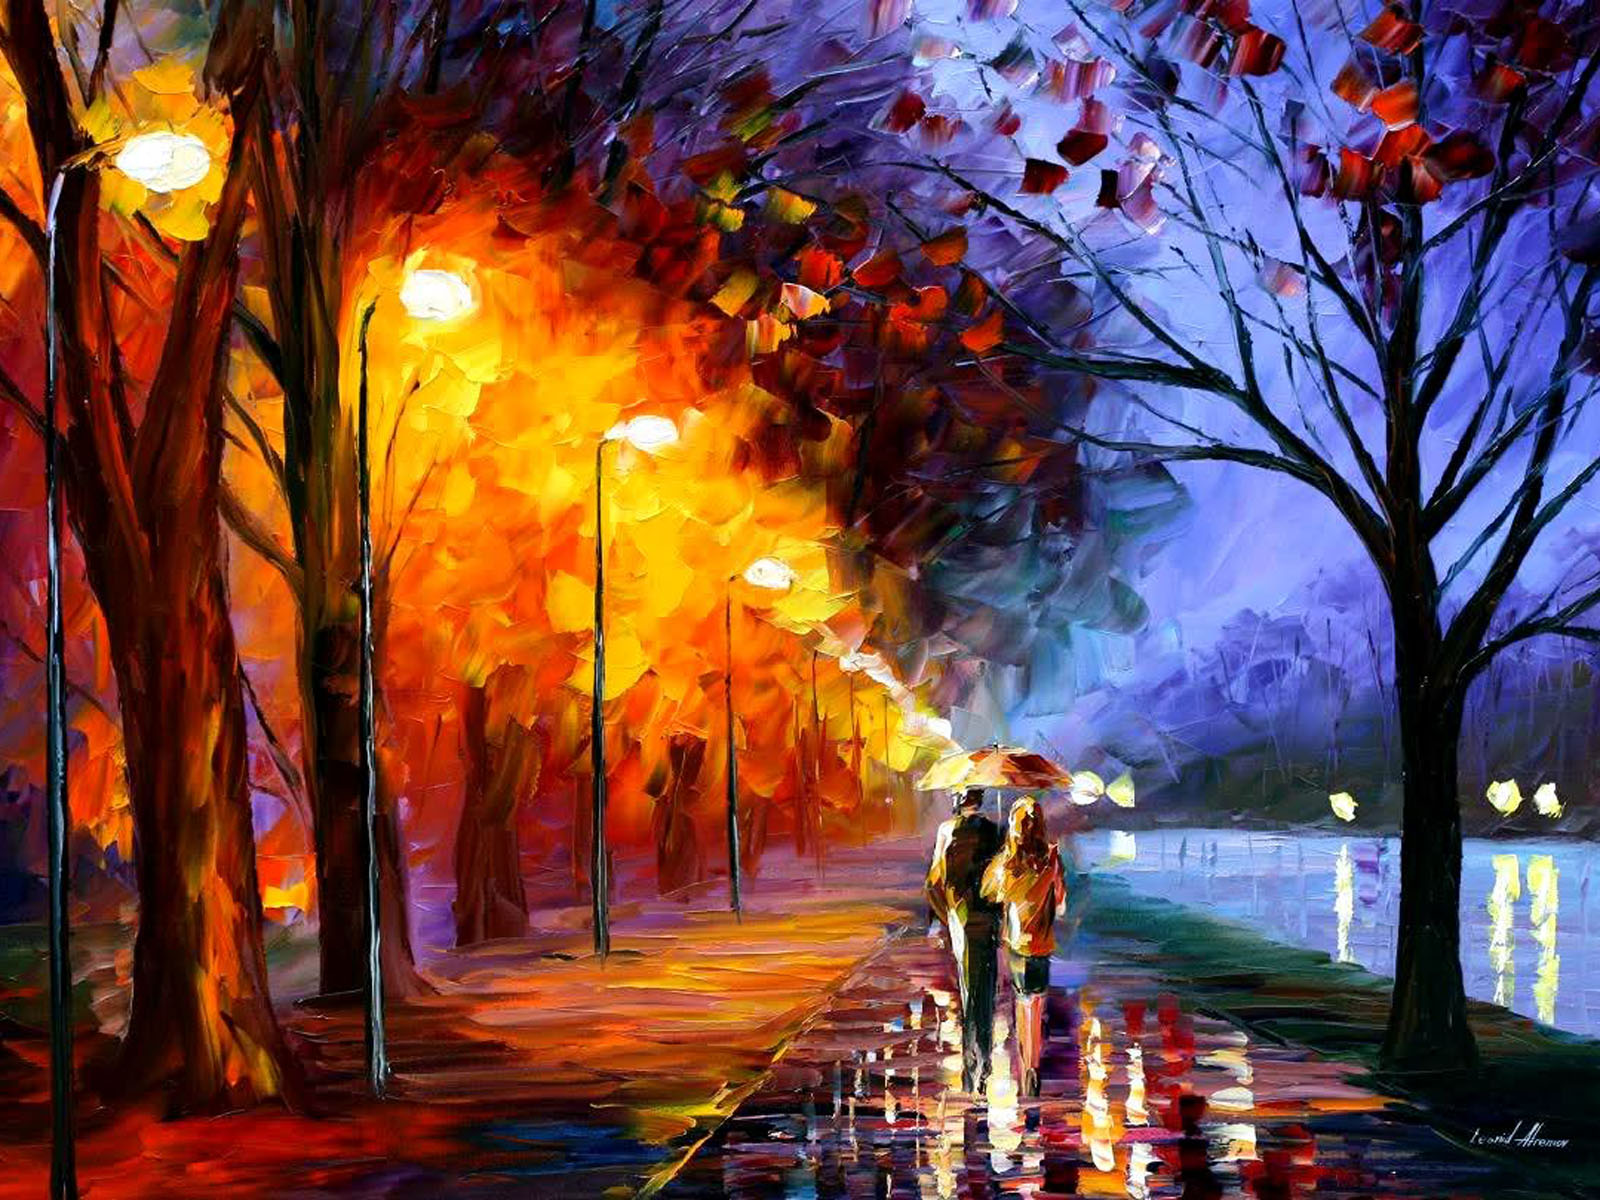 Tag Colorful Paintings Wallpapers Backgrounds Photos Images And Pictures For Free